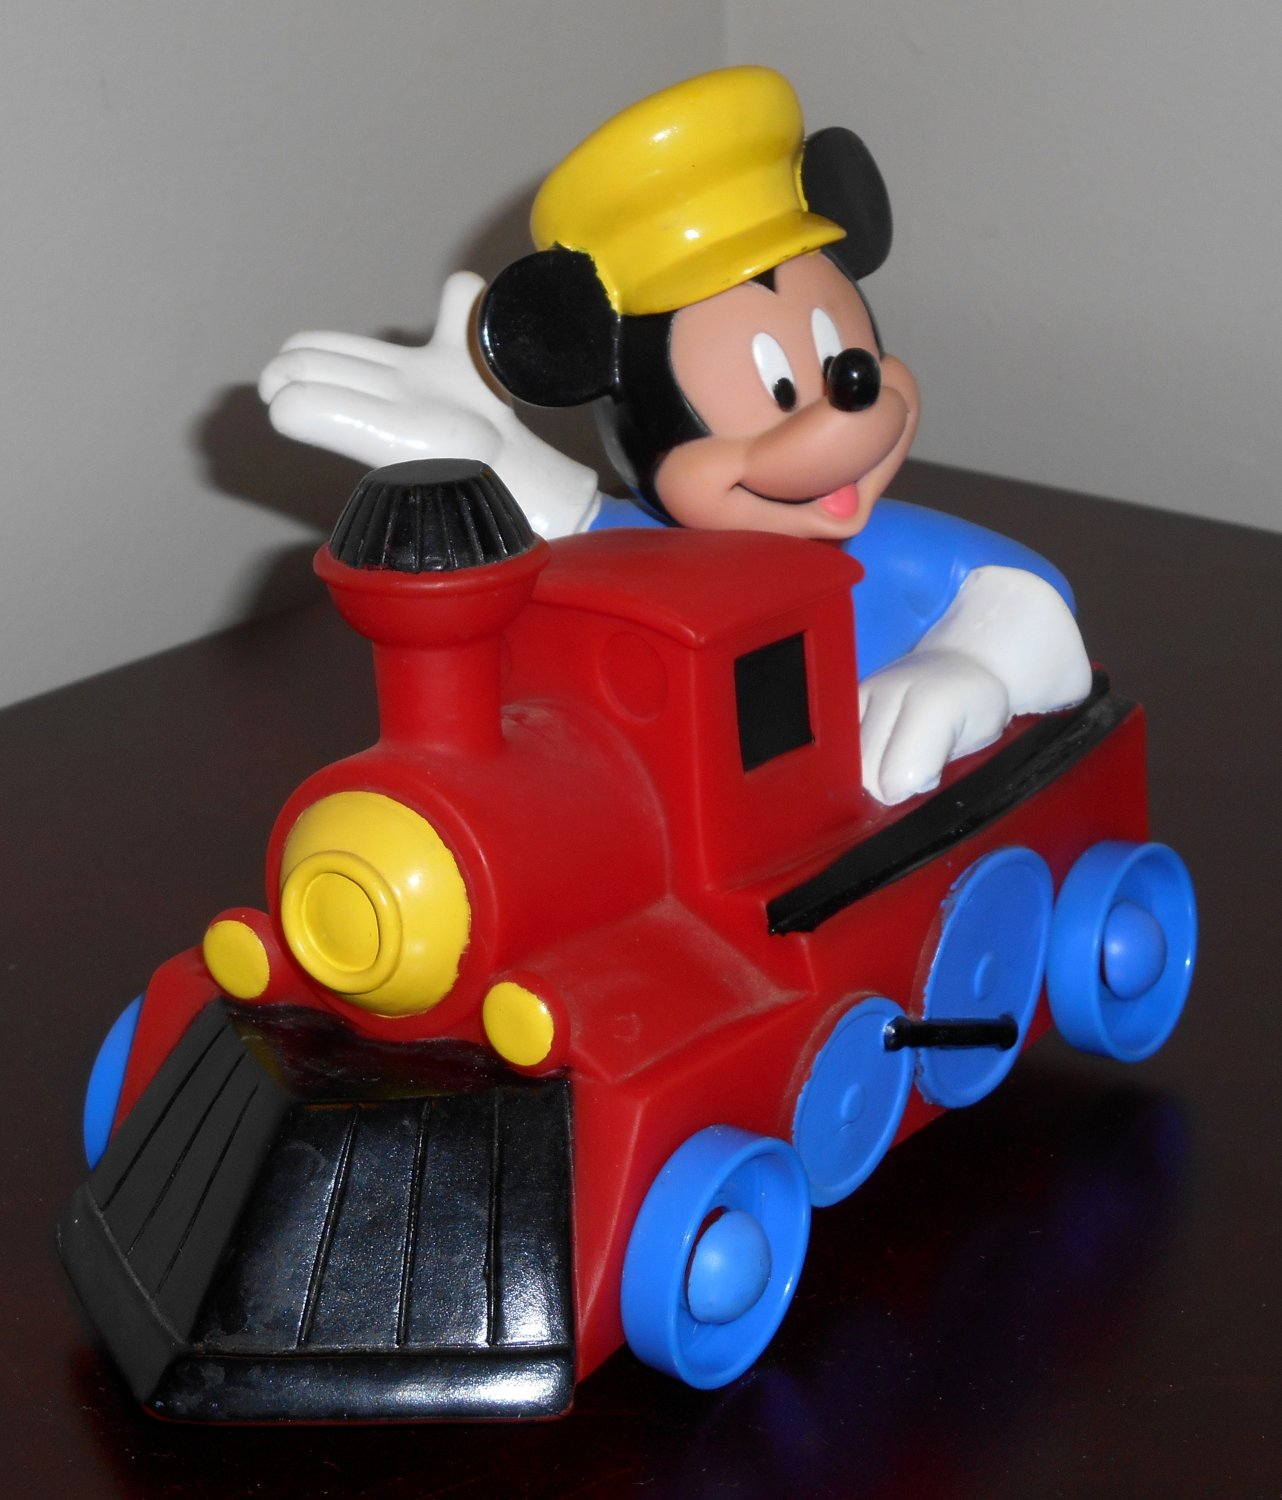 Mickey Mouse Plastic Toy Train Johnson & Johnson 1996 Walt Disney Engineer